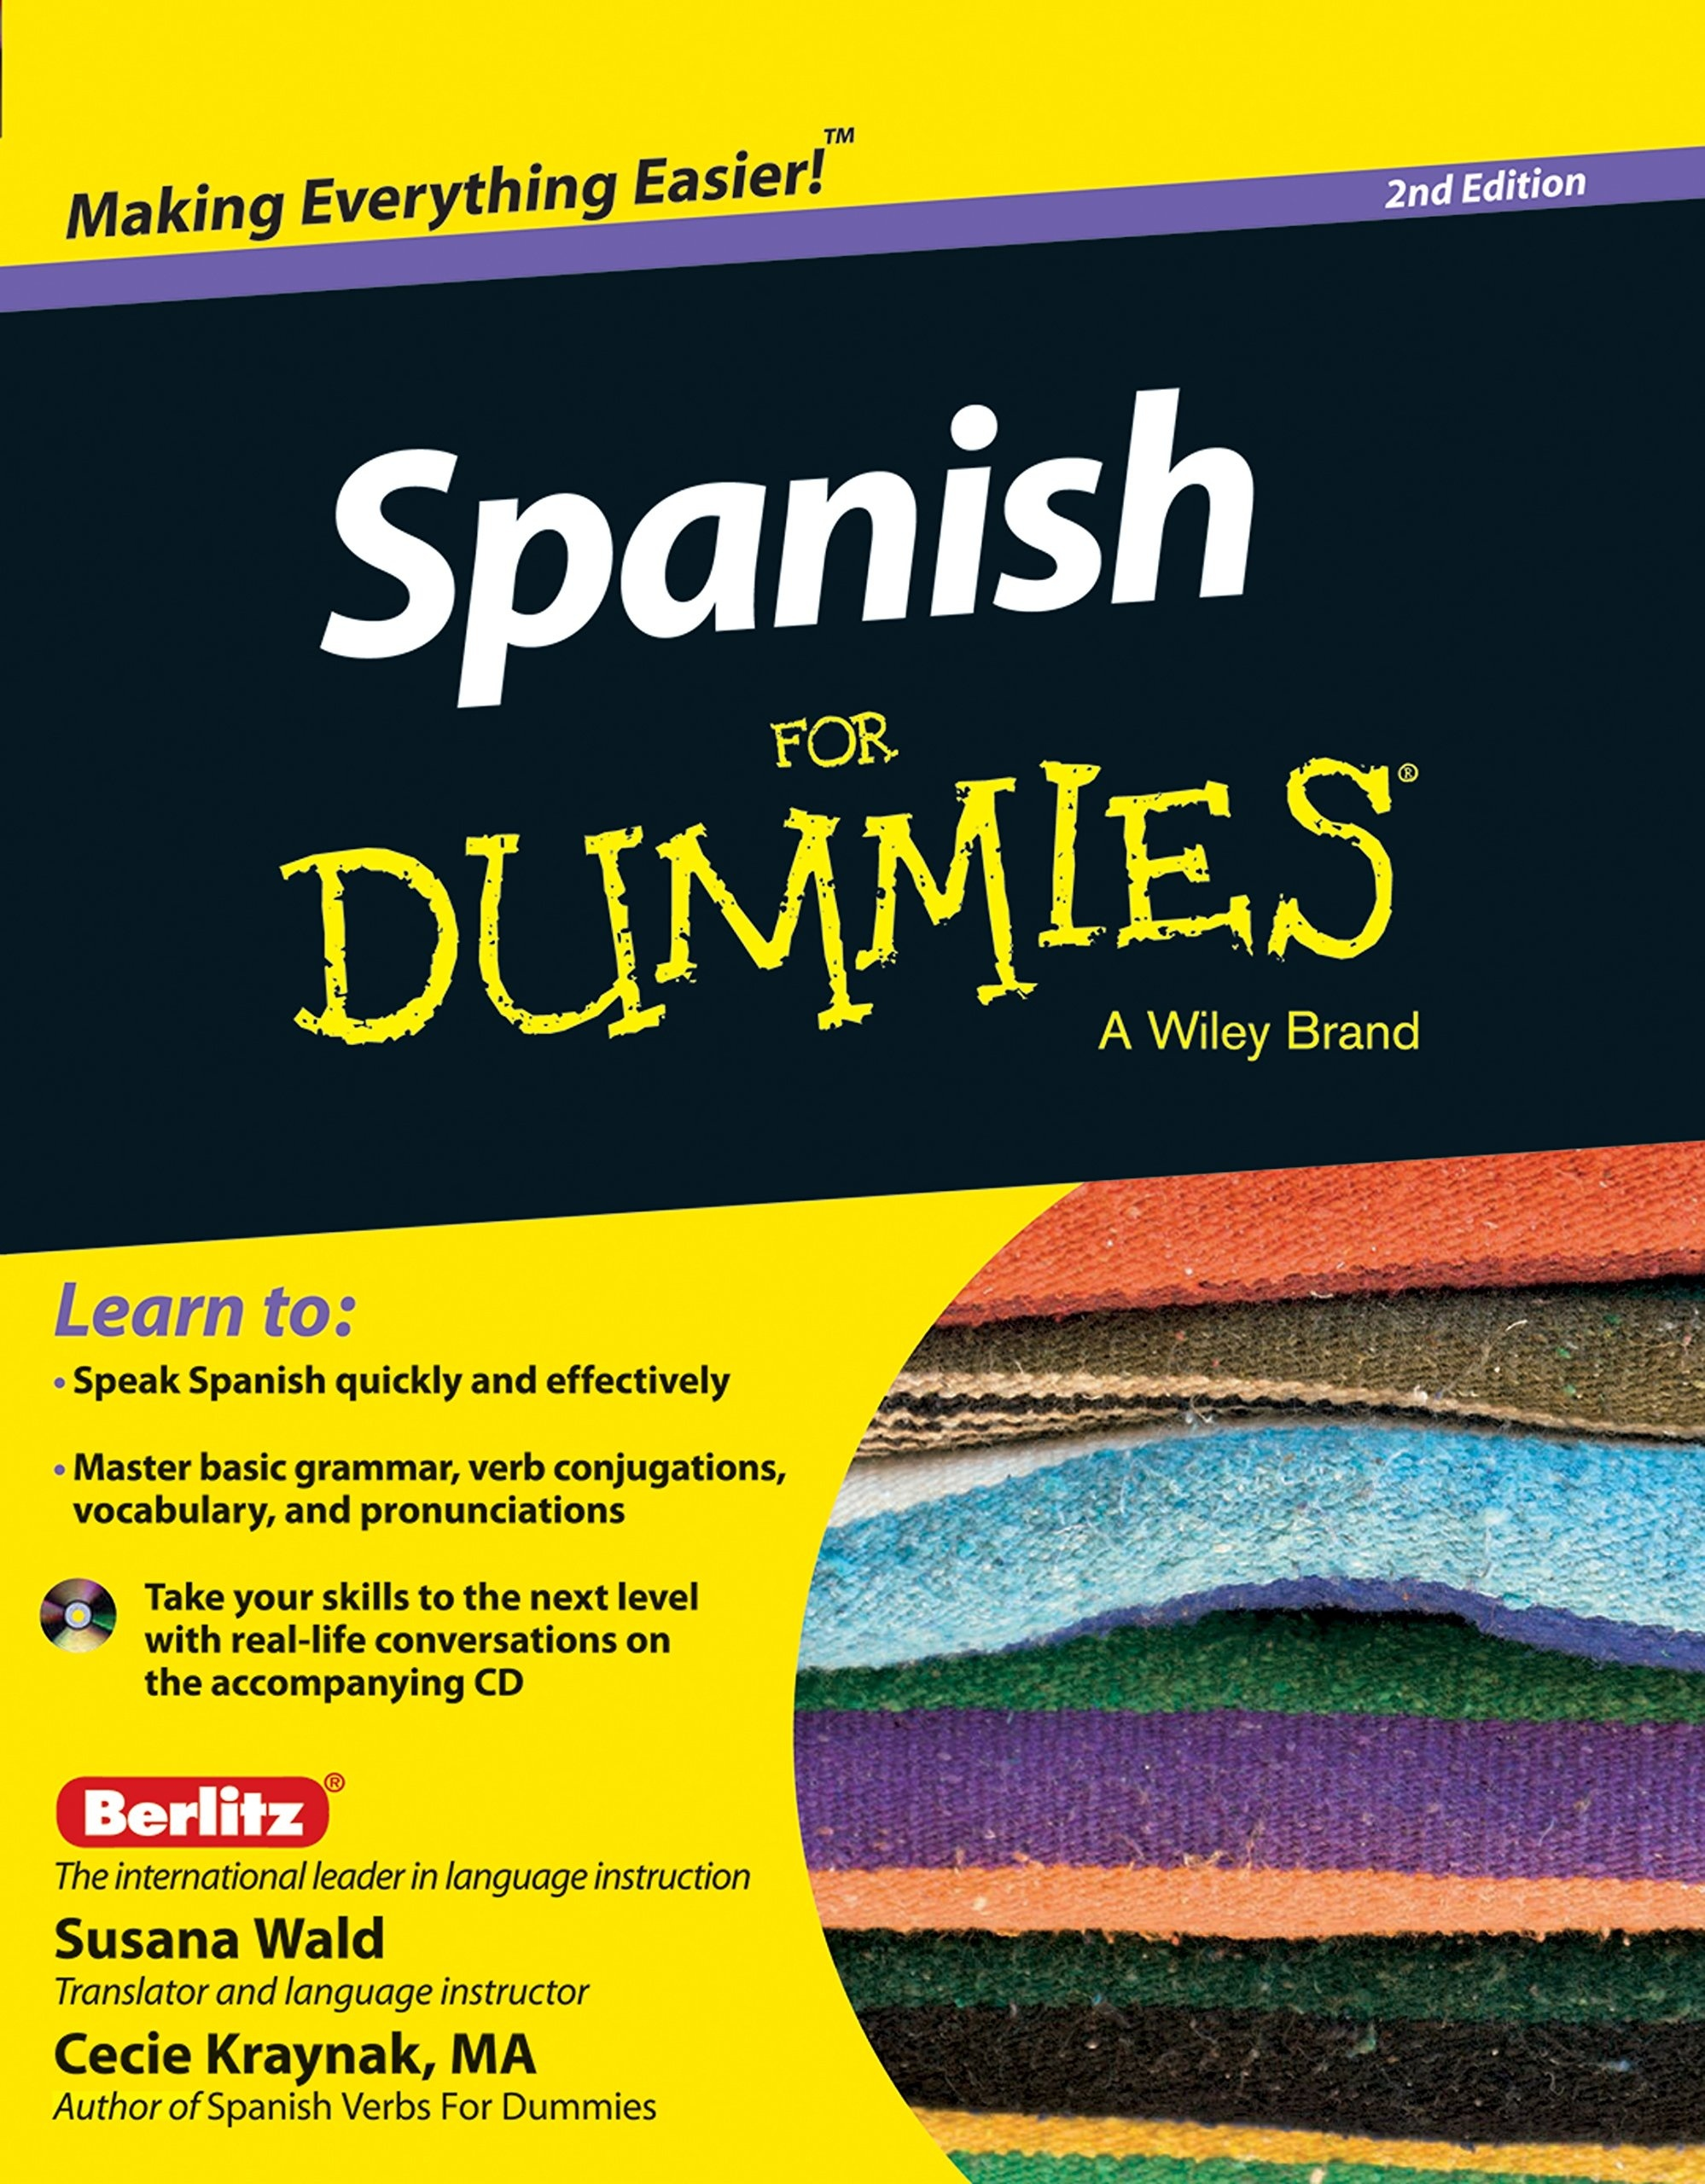 What are the best resources for learning Spanish and how can I